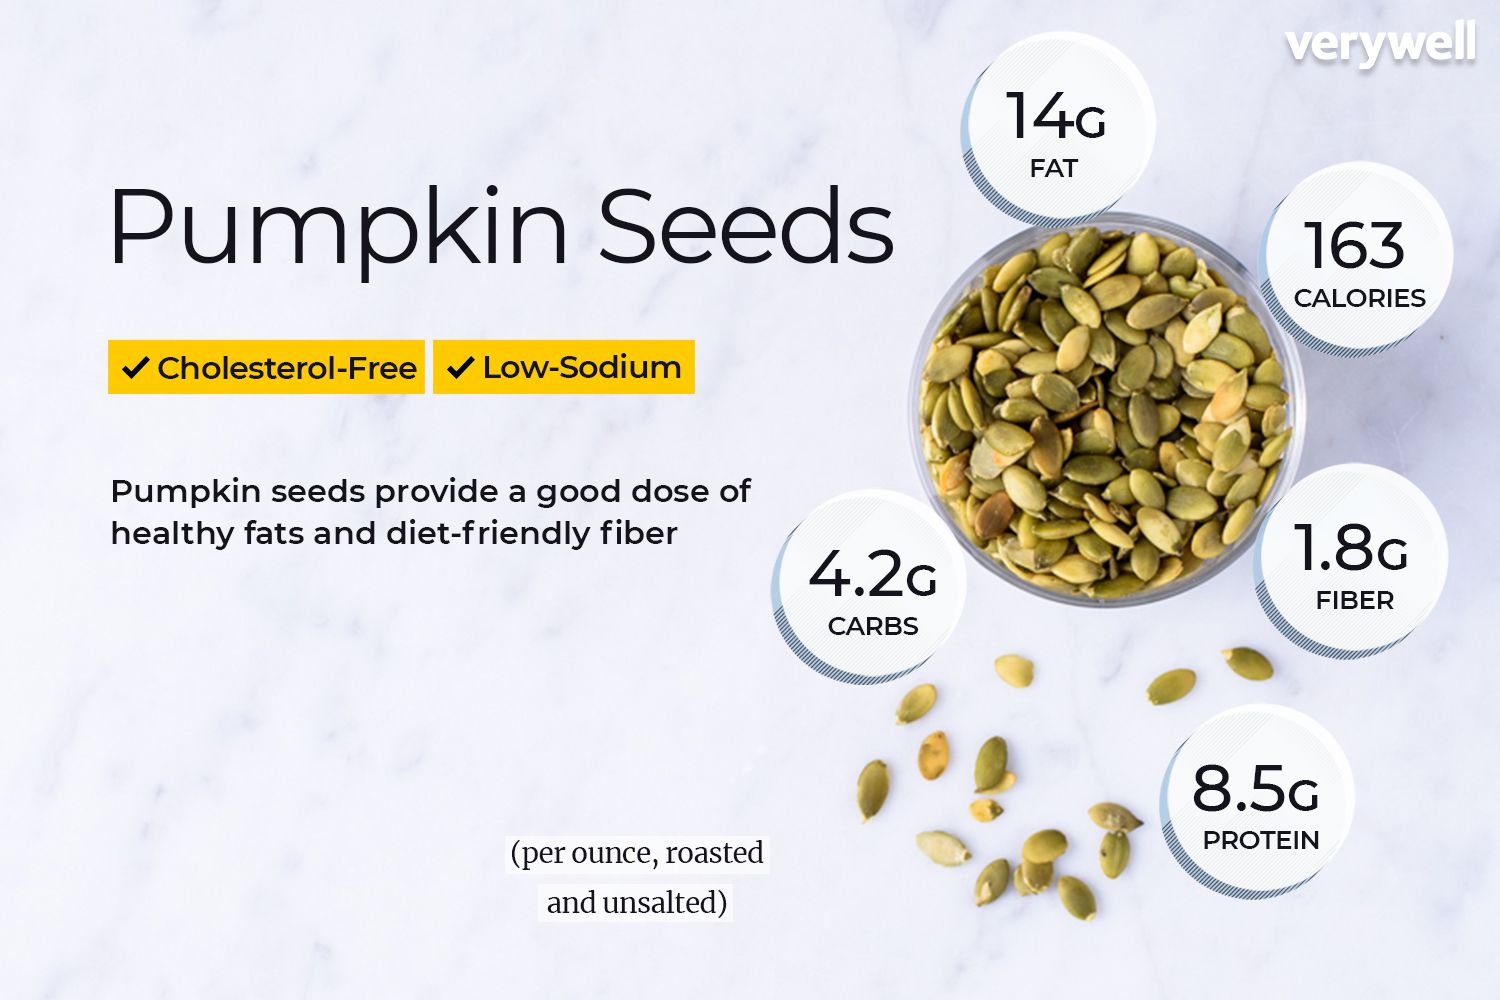 Pumpkin Seed Nutrition Facts And Health Benefits